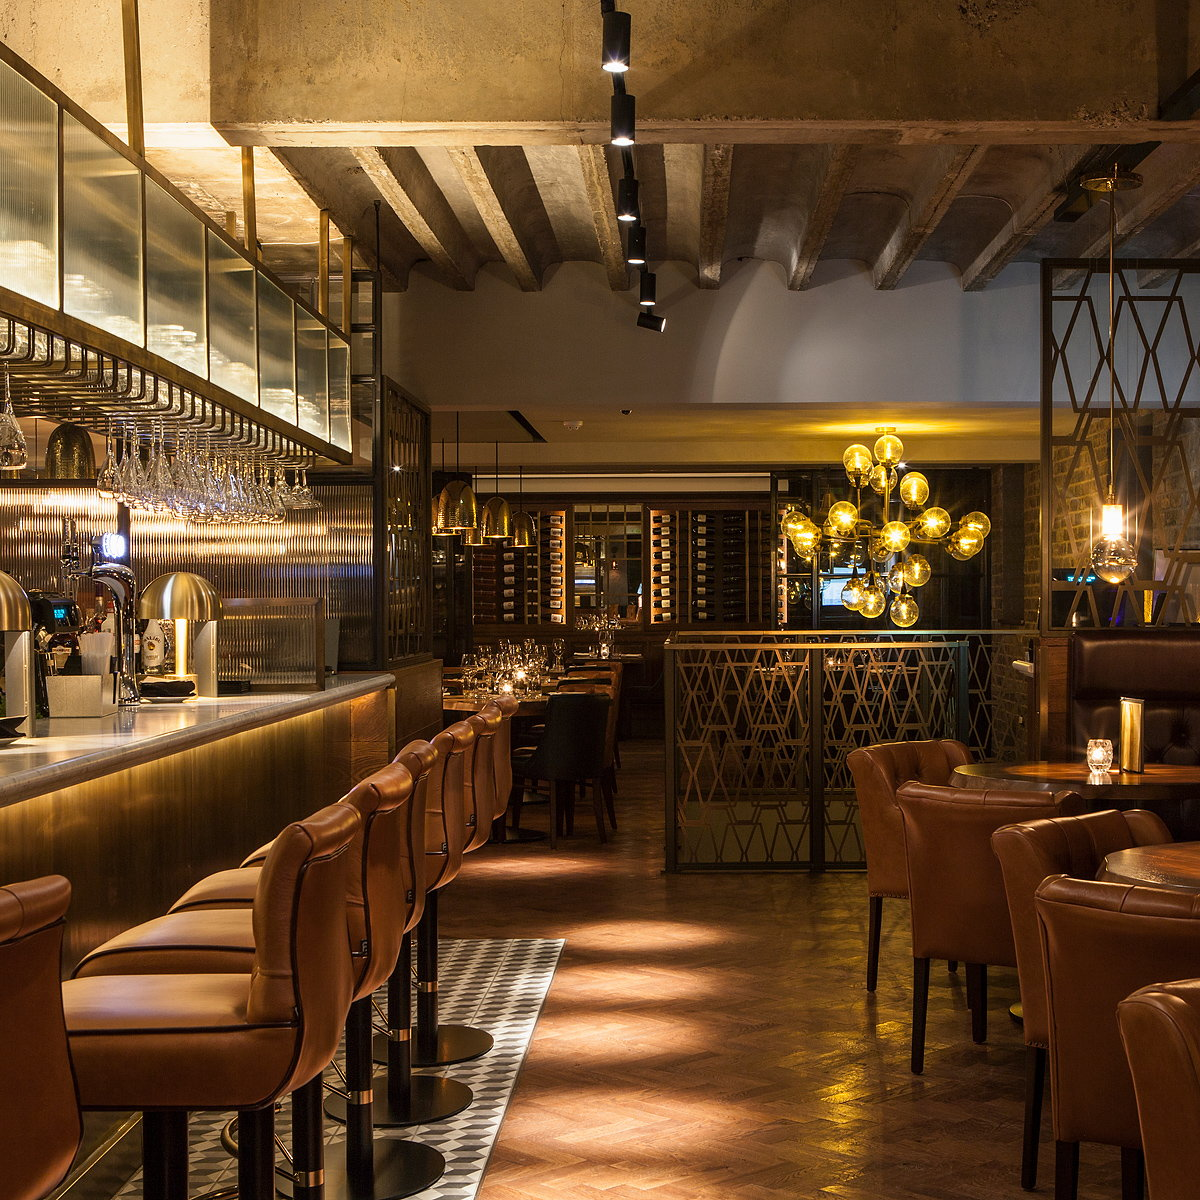 DesignLSM Creates a Destination Dining Experience for Prime Beaconsfield